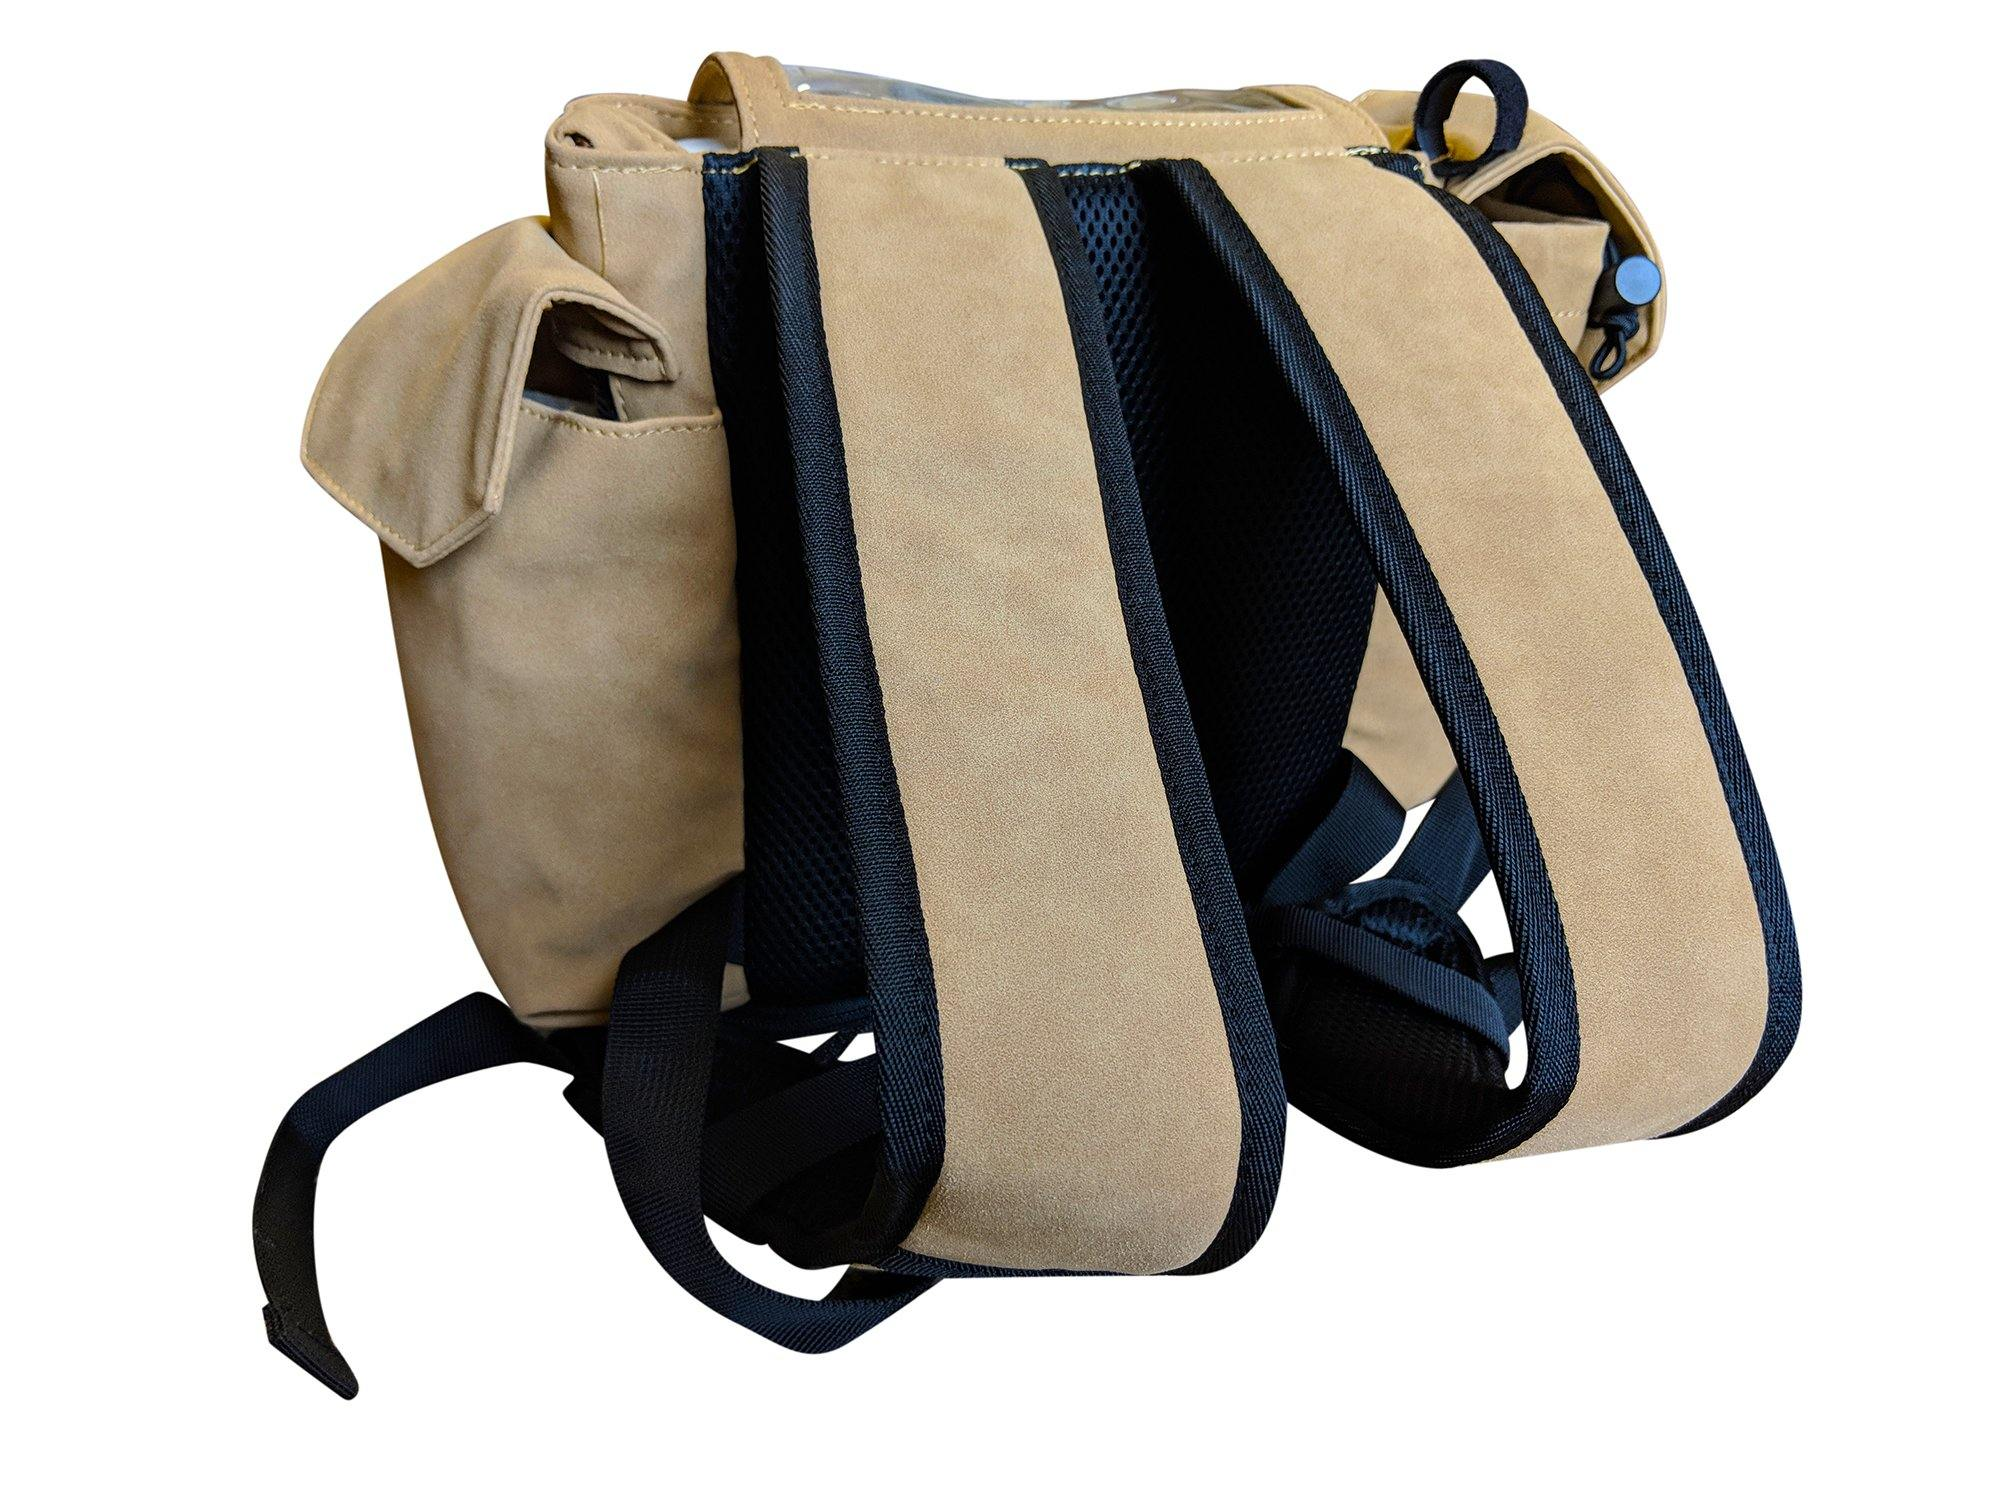 Inogen one G3 Backpack in Dark Tan - O2TOTES